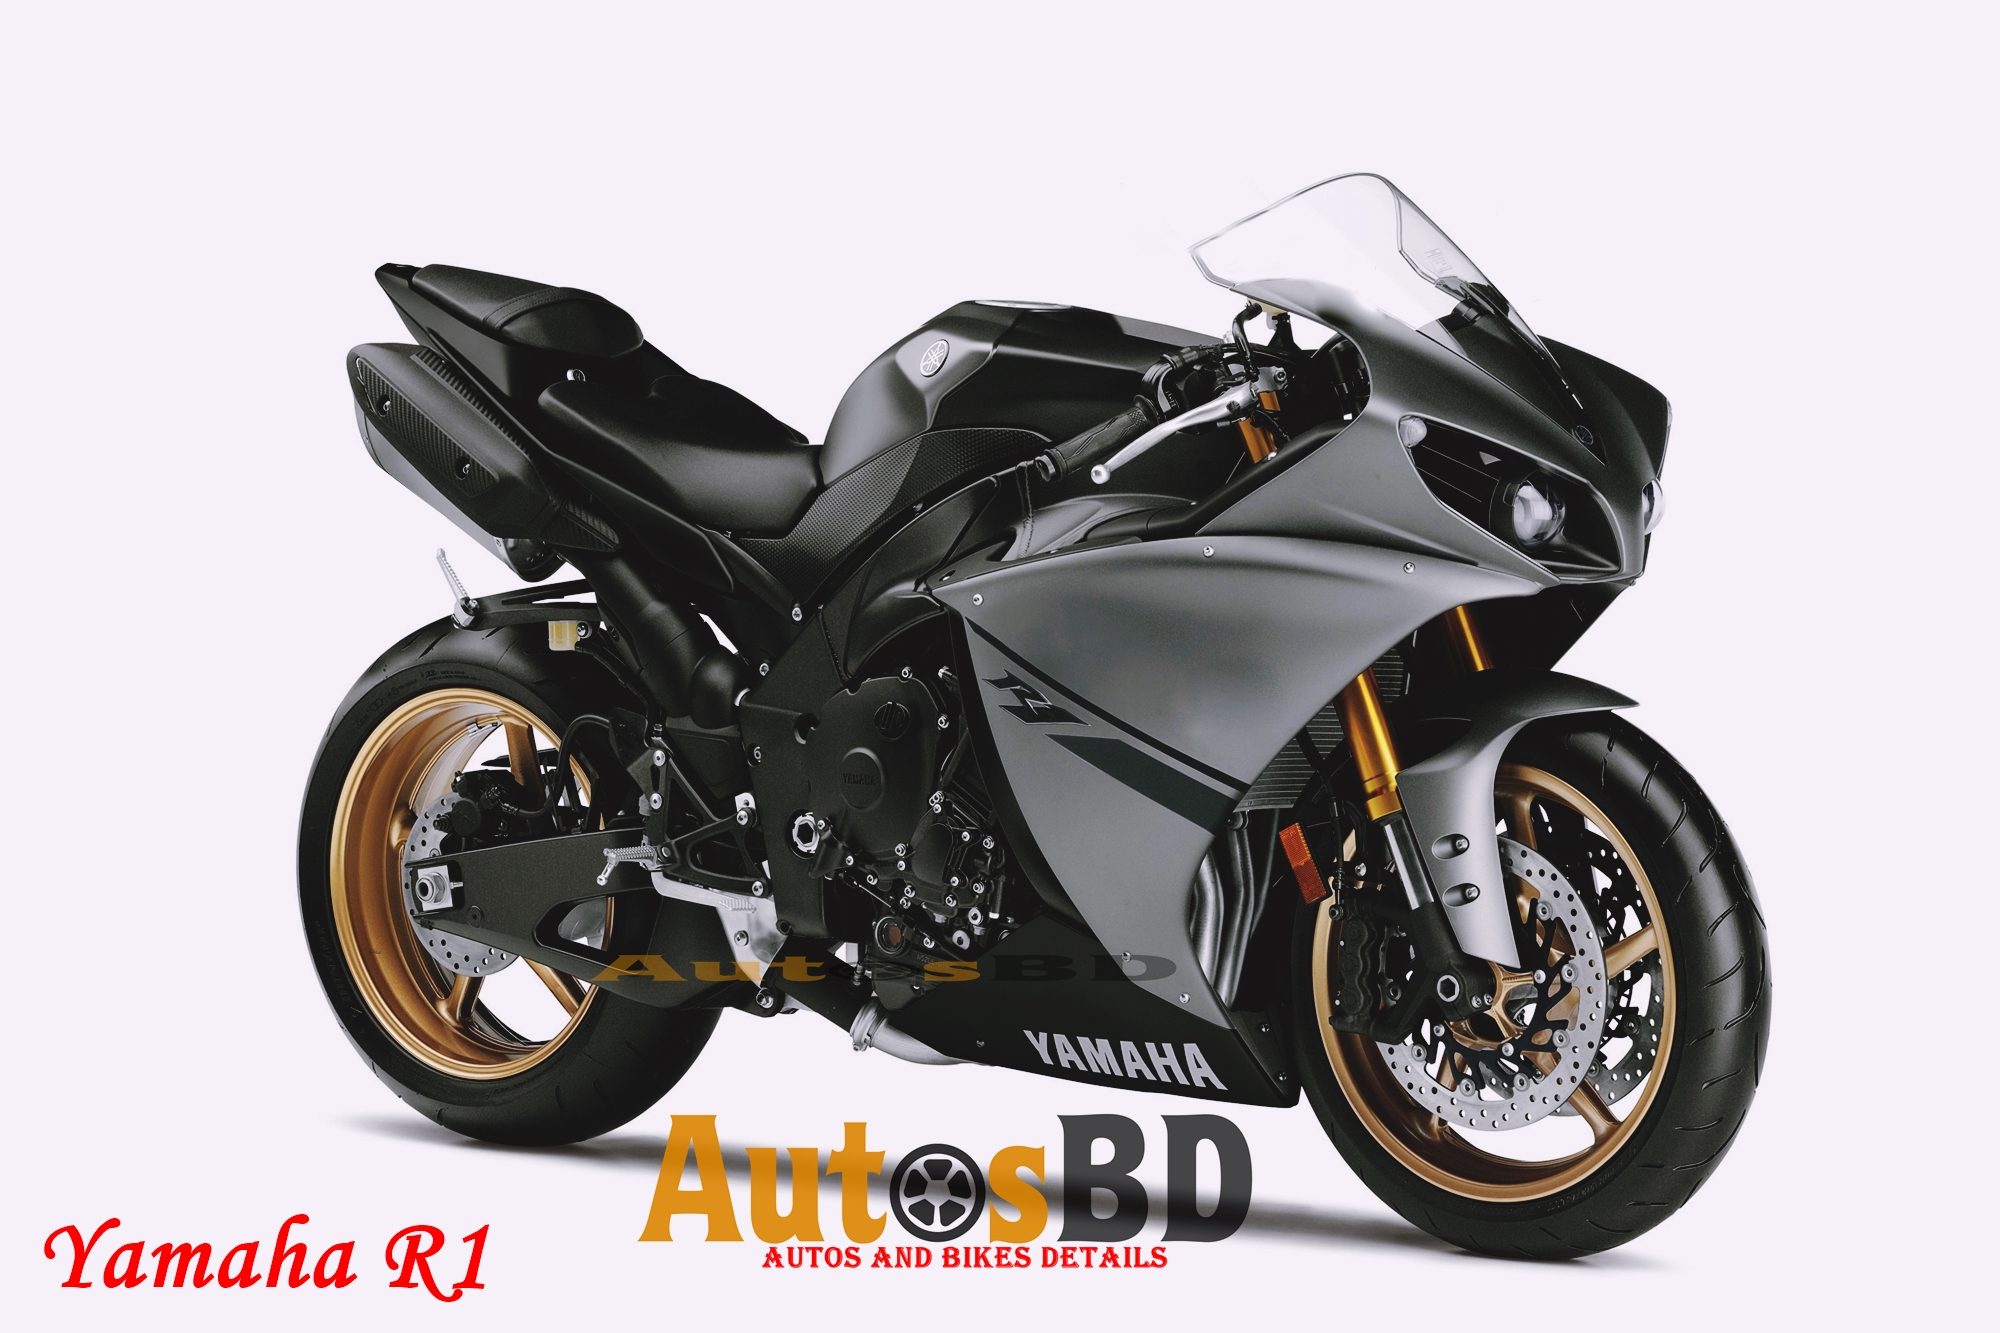 Yamaha R1 Motorcycle Specification